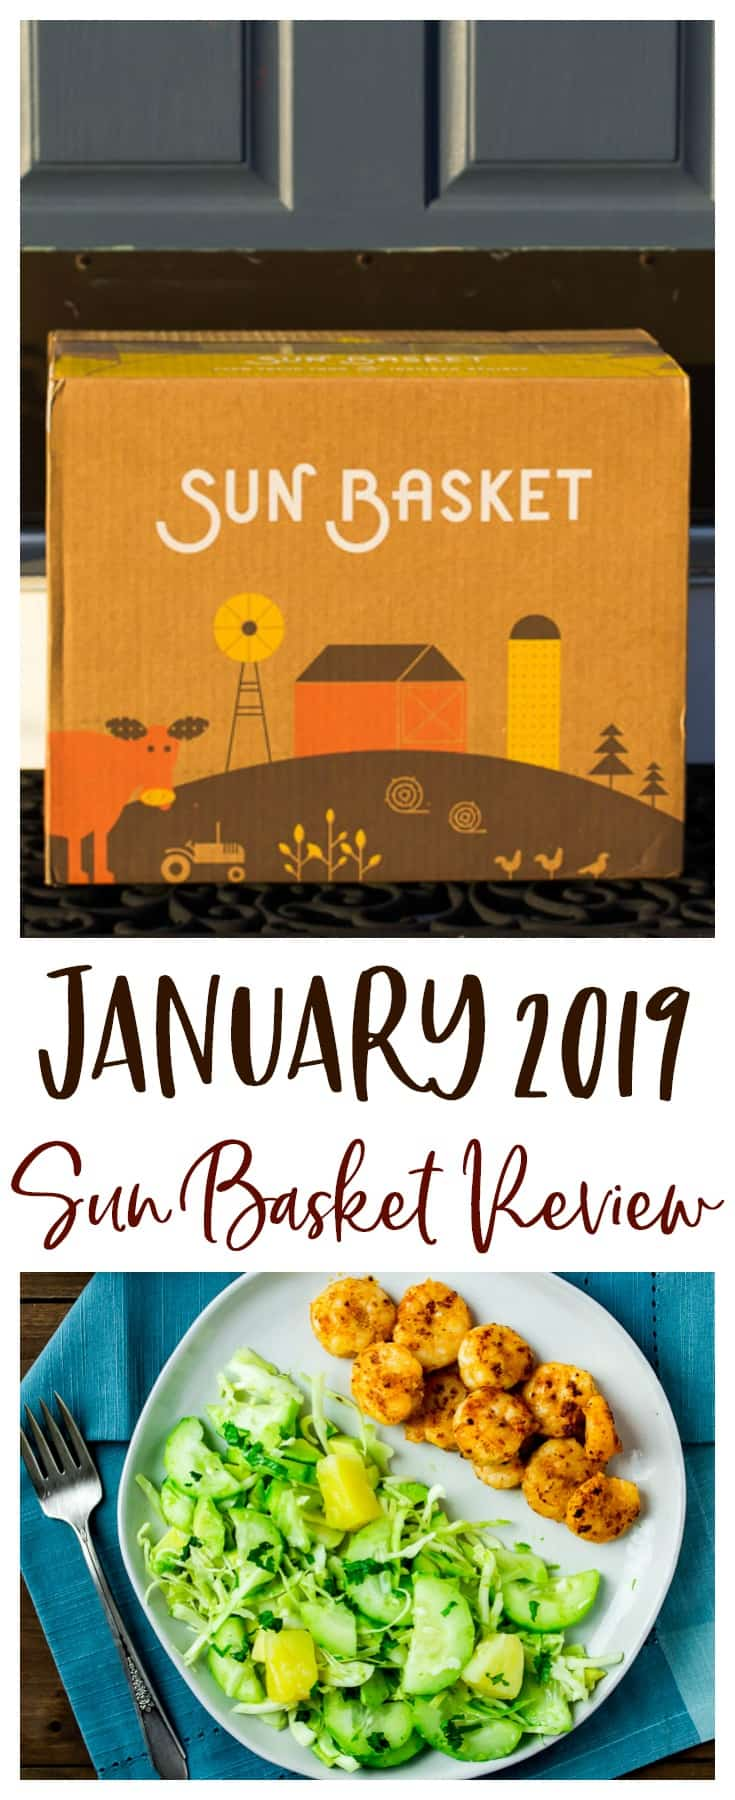 January 2019 Sun Basket Review - get all the details on this meal kit subscription box and a review of the 3 healthy recipes that I tried! PLUS the best deal available for 1st time subscribers! | #ad #sunbasket #sunbasketmeals #2019sunbasket #organic